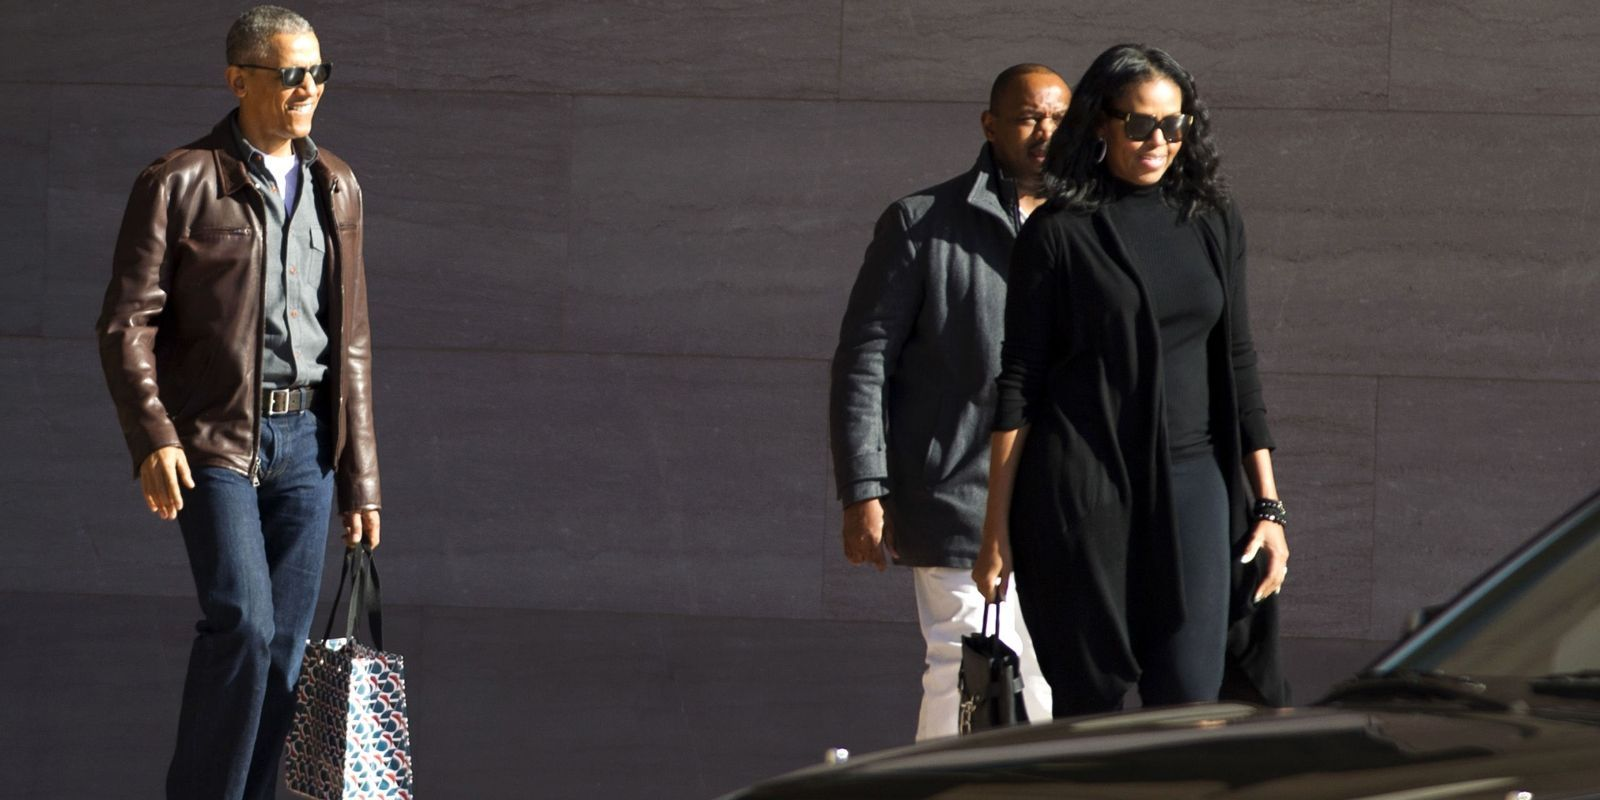 Leather Jackets, Packed Lunches, and More Details on How the Obamas Are Making the Most of Post-Presidency Life